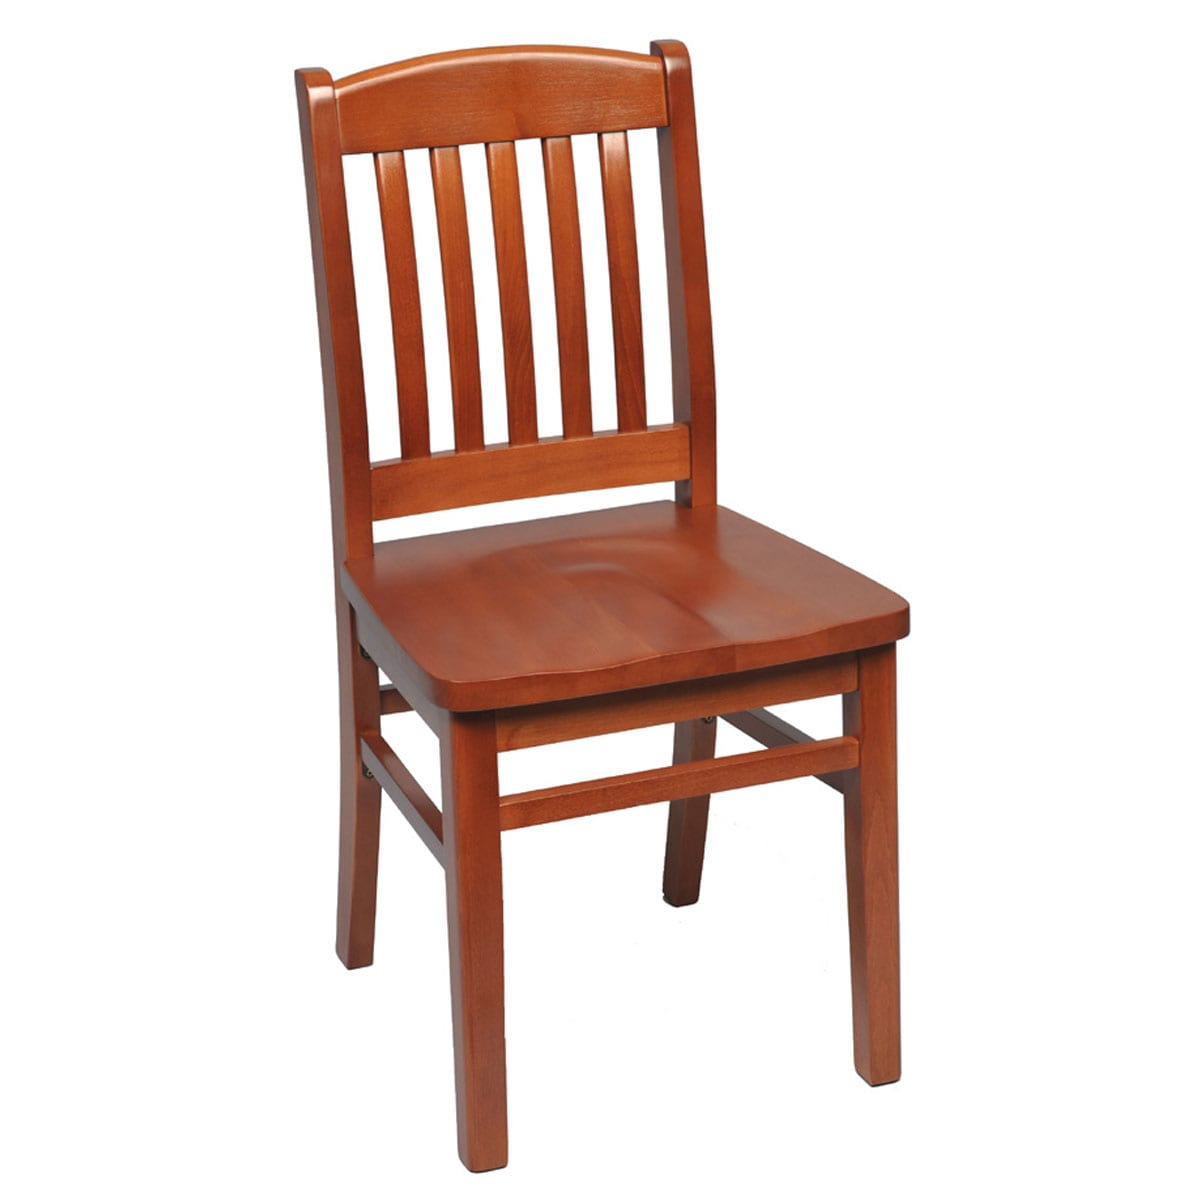 wood best prices wl wine seat walnut premium chair quality back finish main restaurant ladder with vinyl solid chairs vnlwn